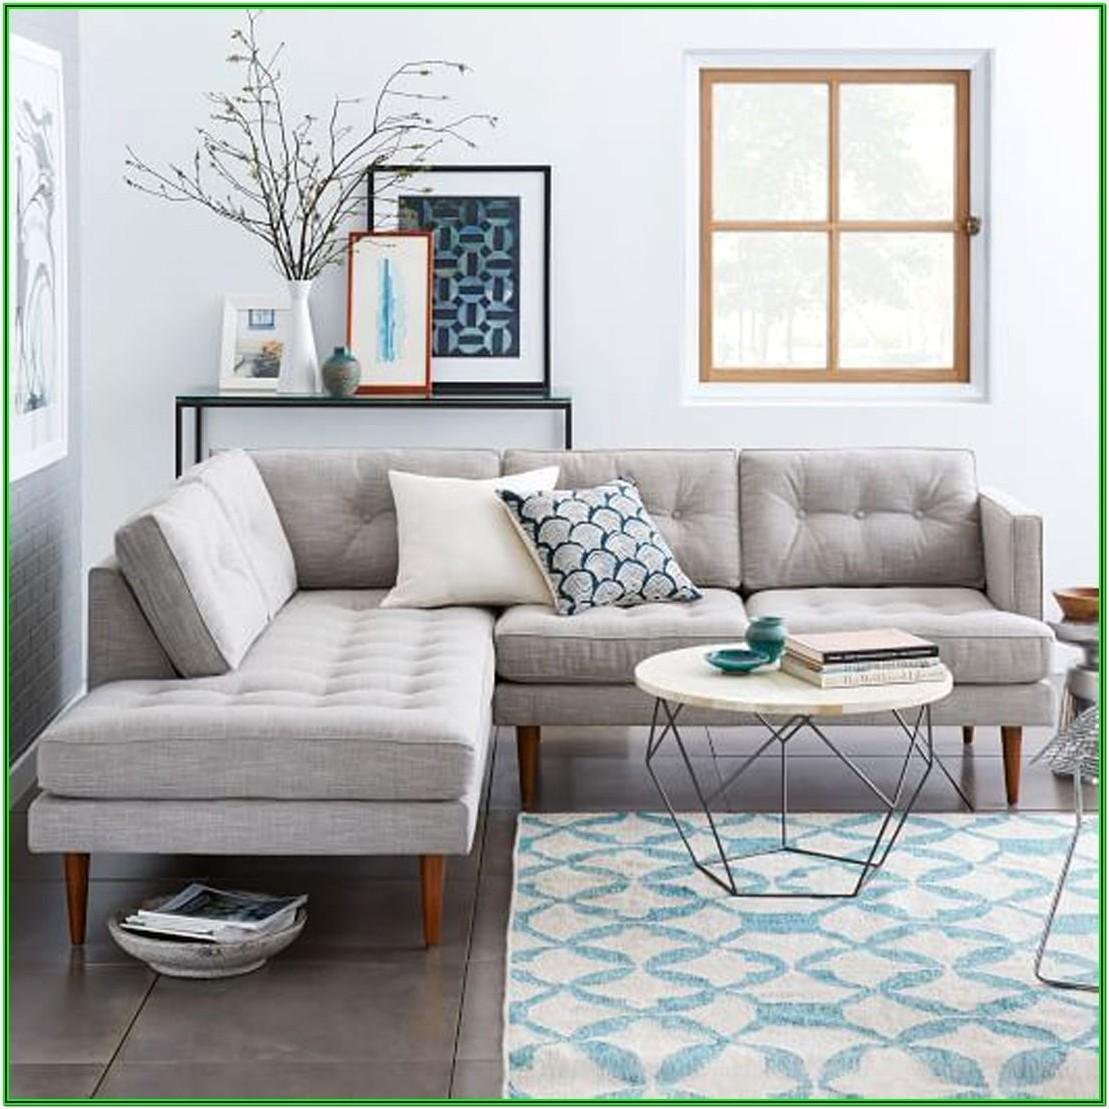 Living Room Table Legs Branches Decor